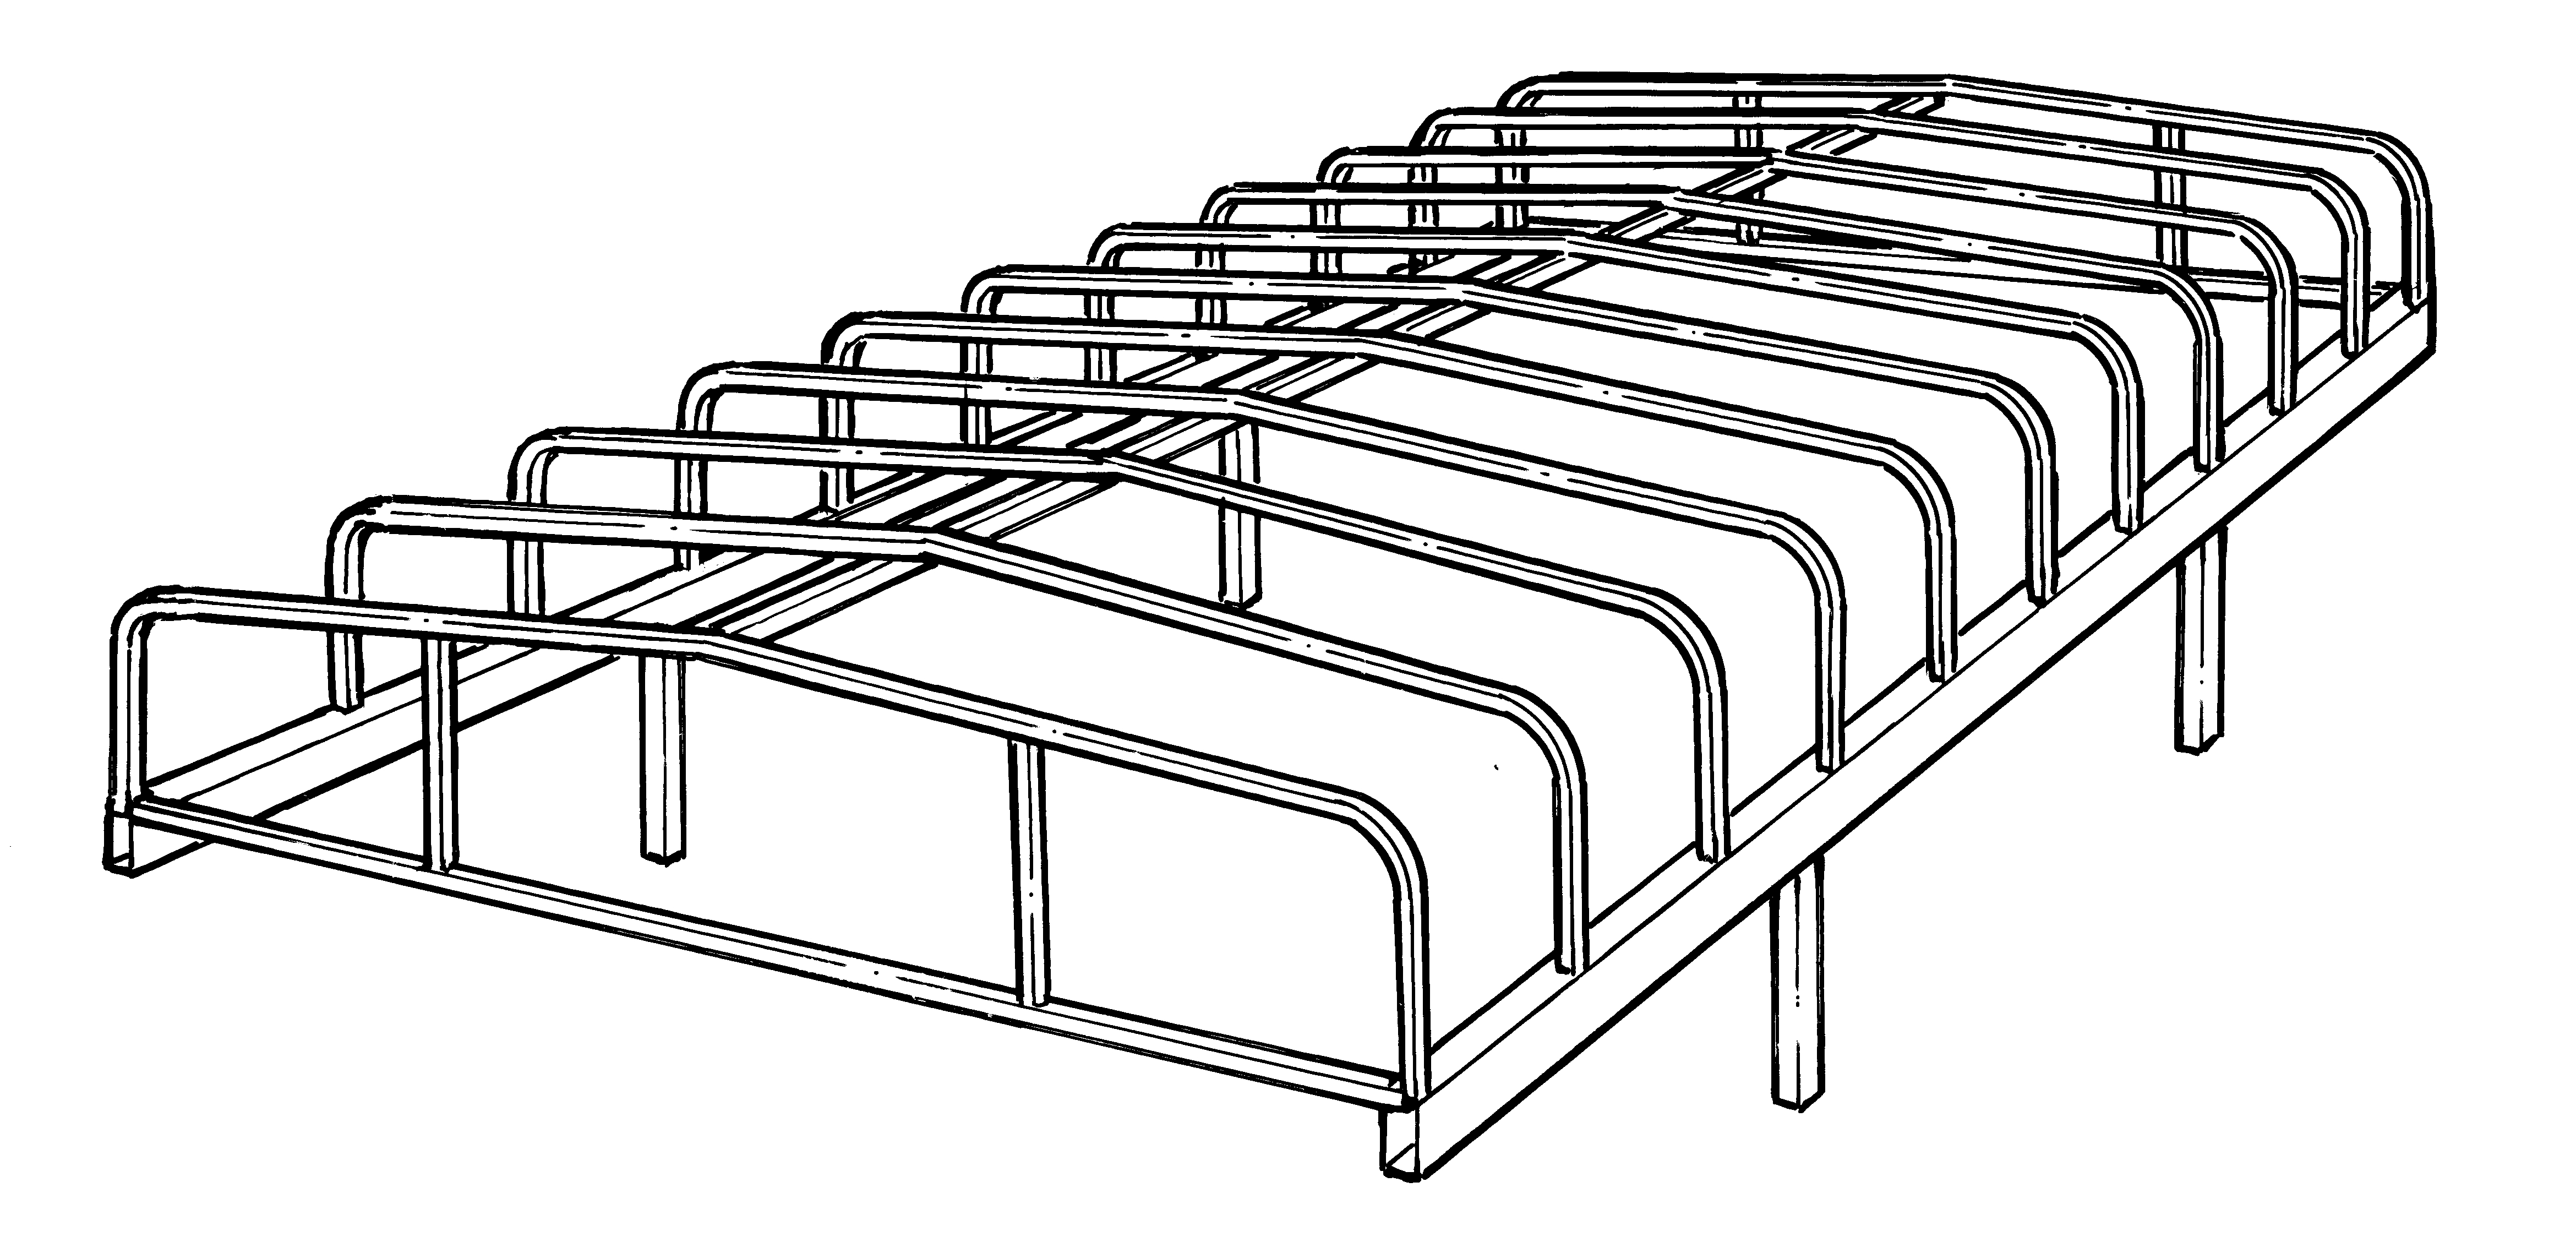 Feighner Boat Lift Canopies